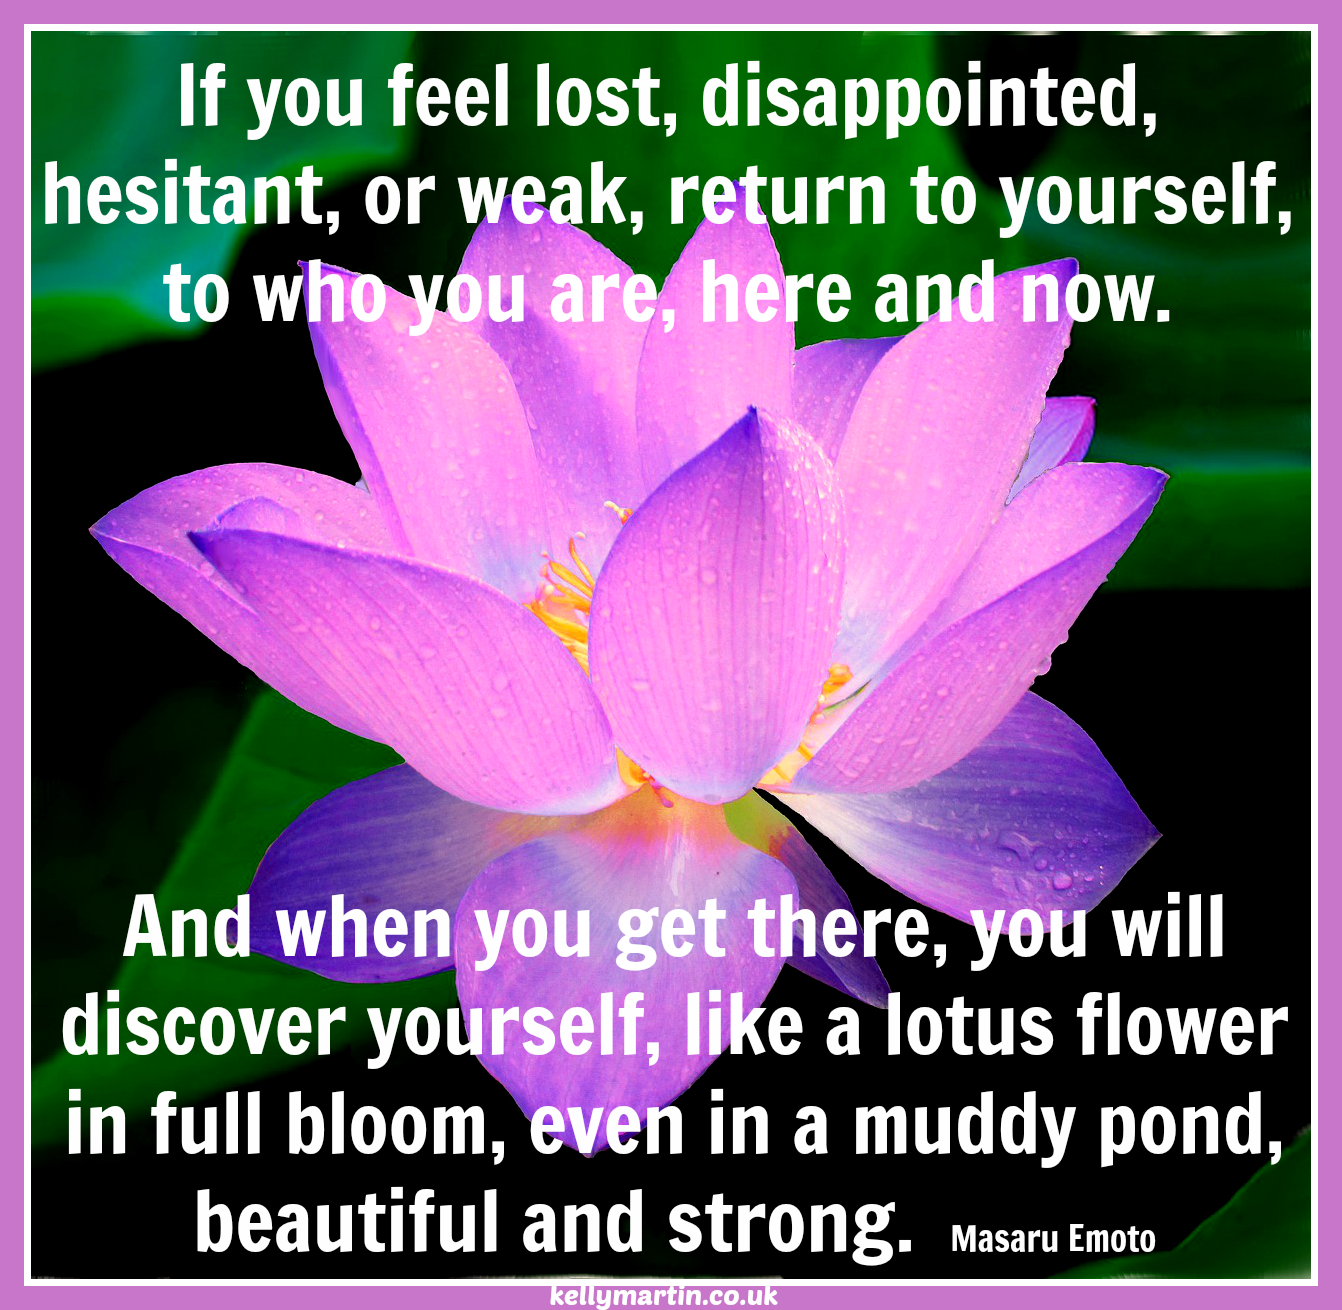 """If you feel lost, disappointed, hesitant, or weak, return"